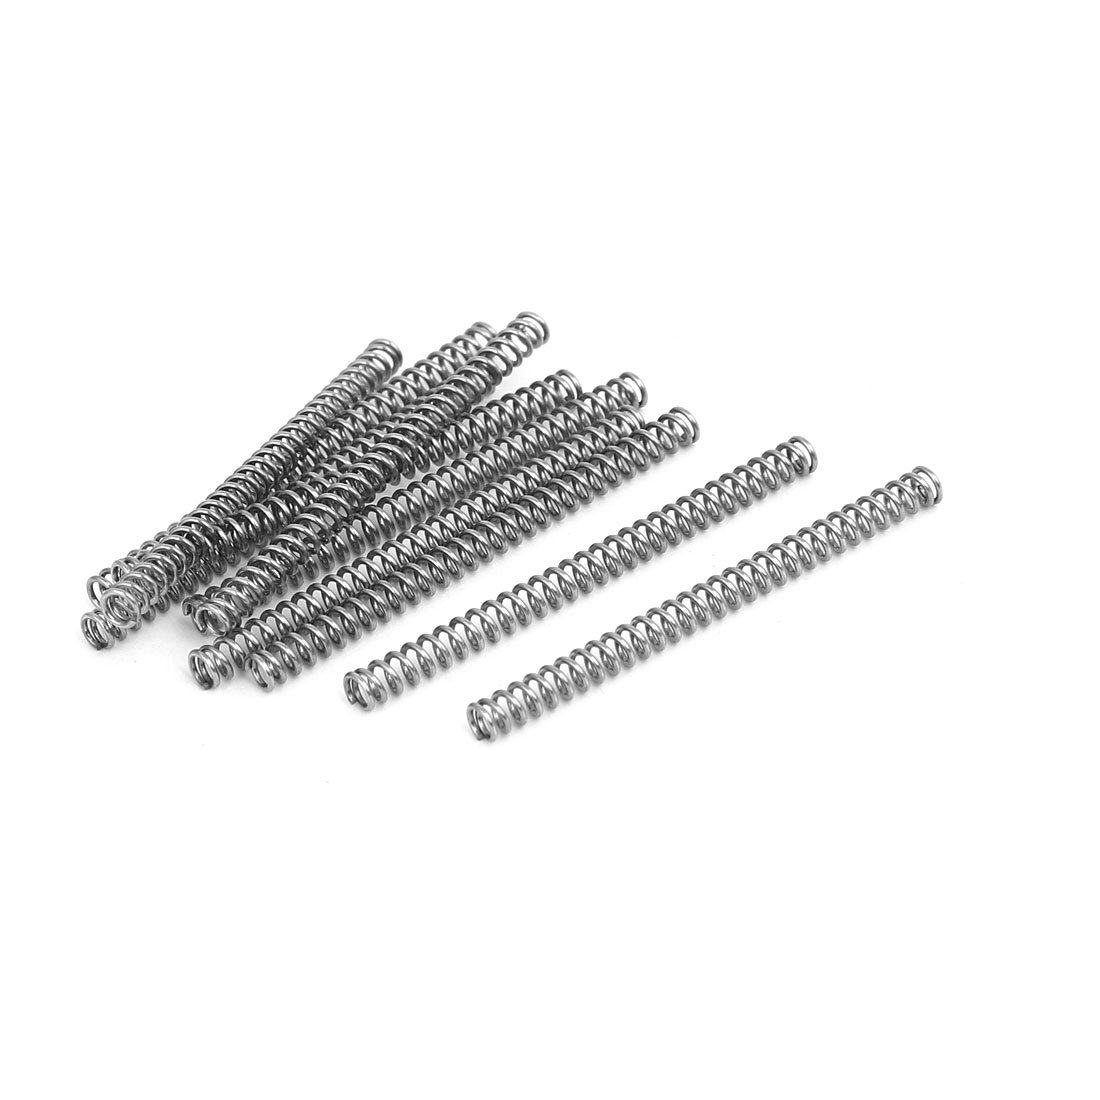 uxcell 0.5mmx3mmx40mm 304 Stainless Steel Compression Springs Silver Tone 10pcs